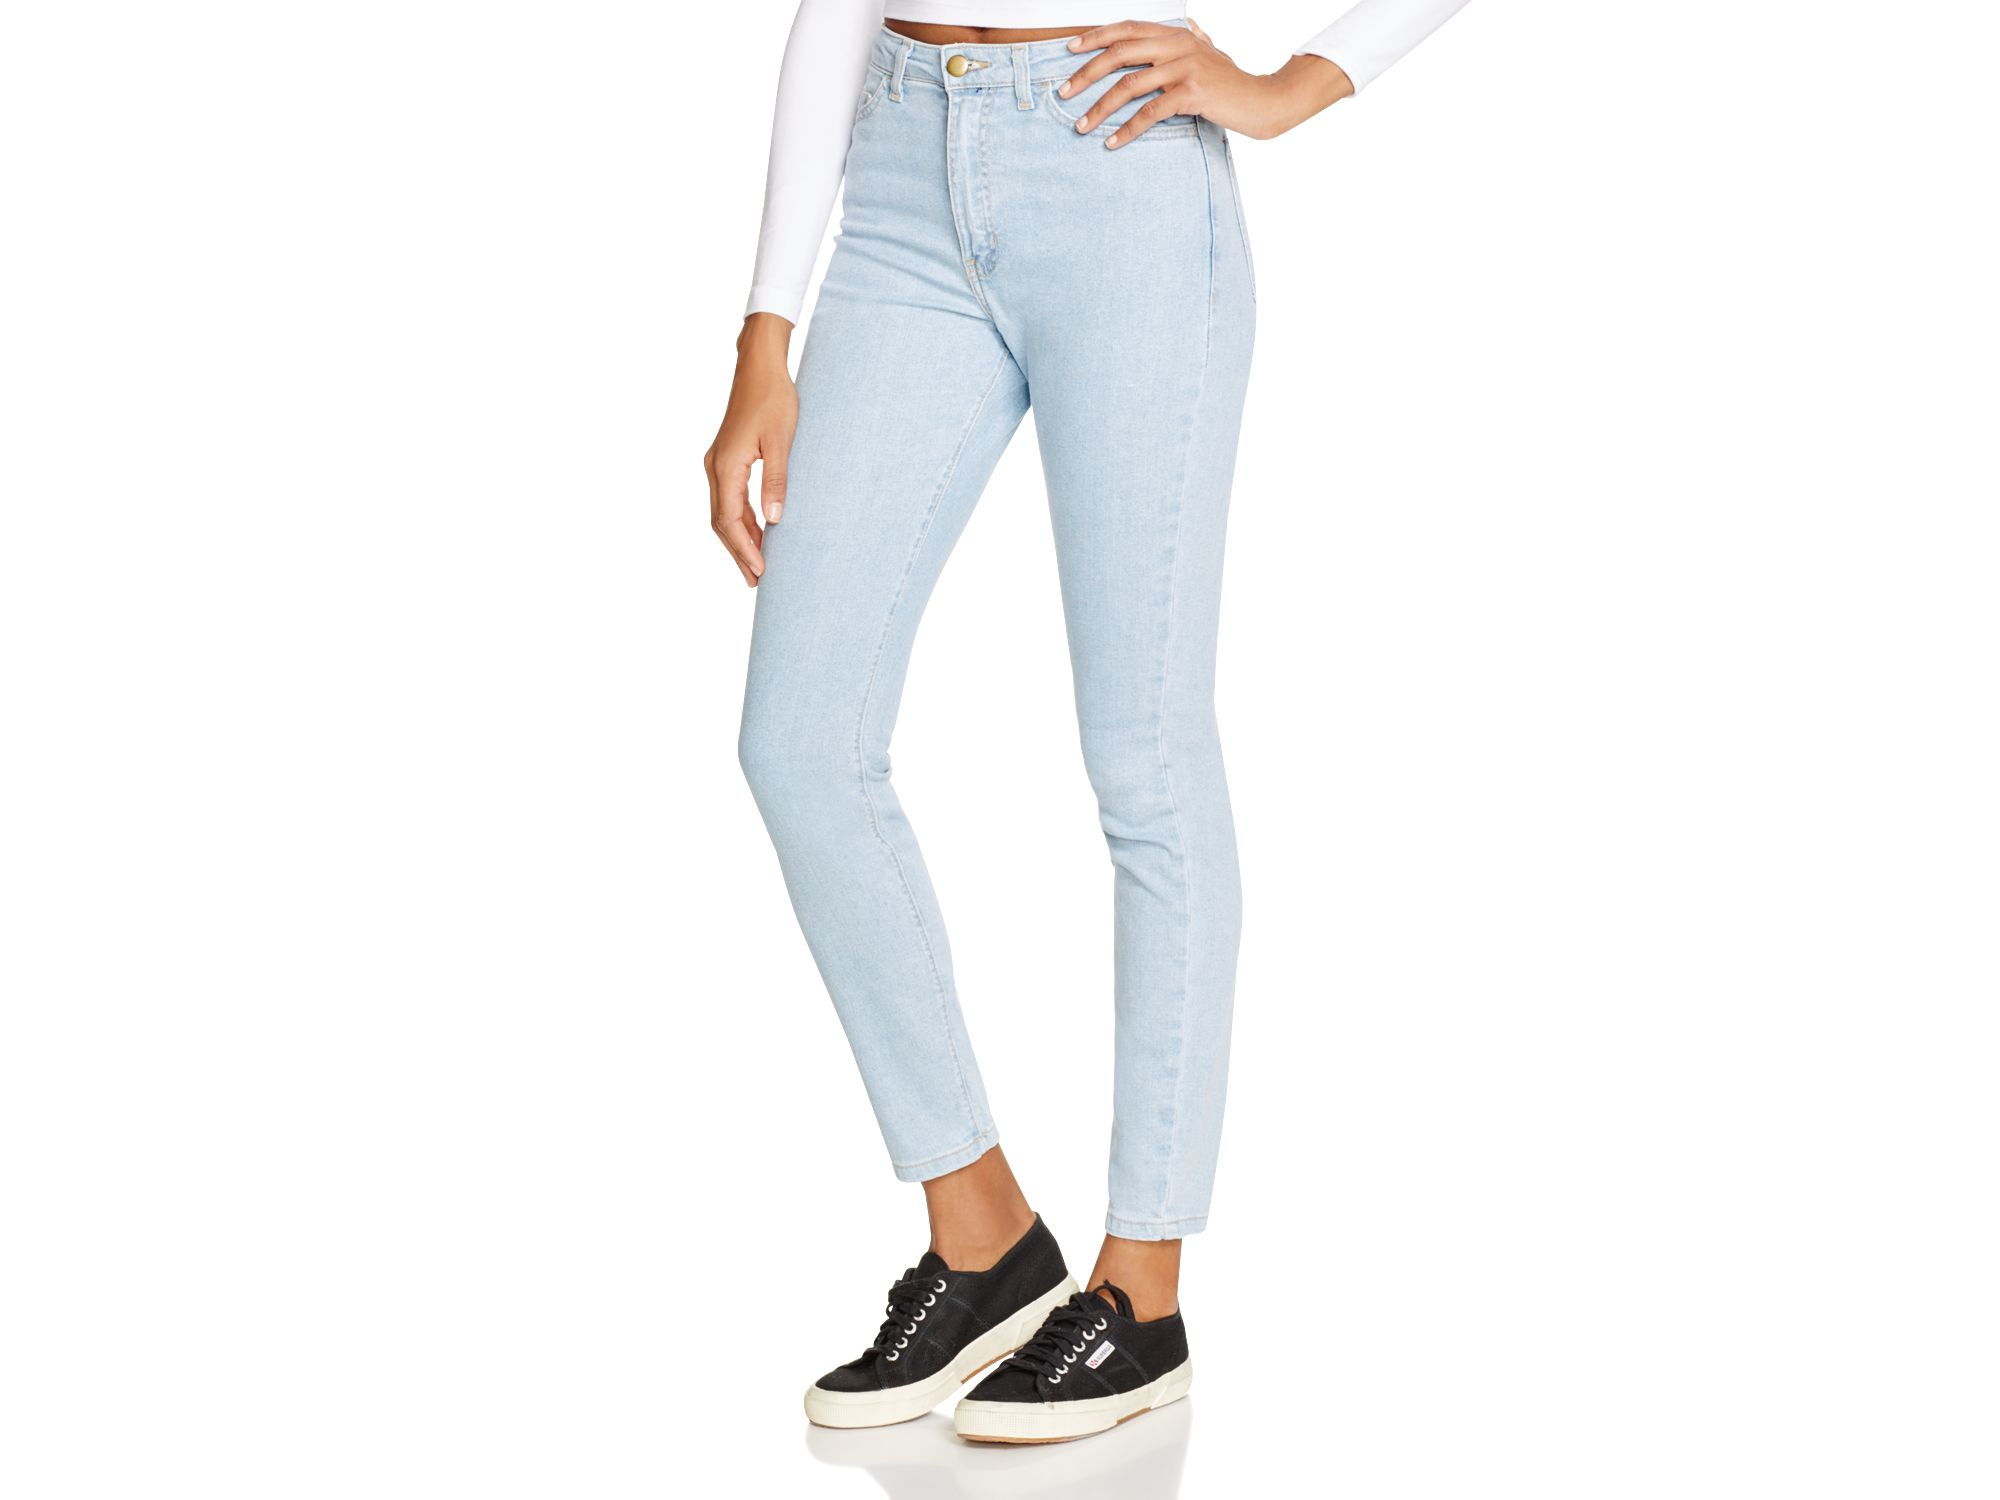 lyst american apparel stretch denim pencil jeans in medium stone washed indigo in blue. Black Bedroom Furniture Sets. Home Design Ideas